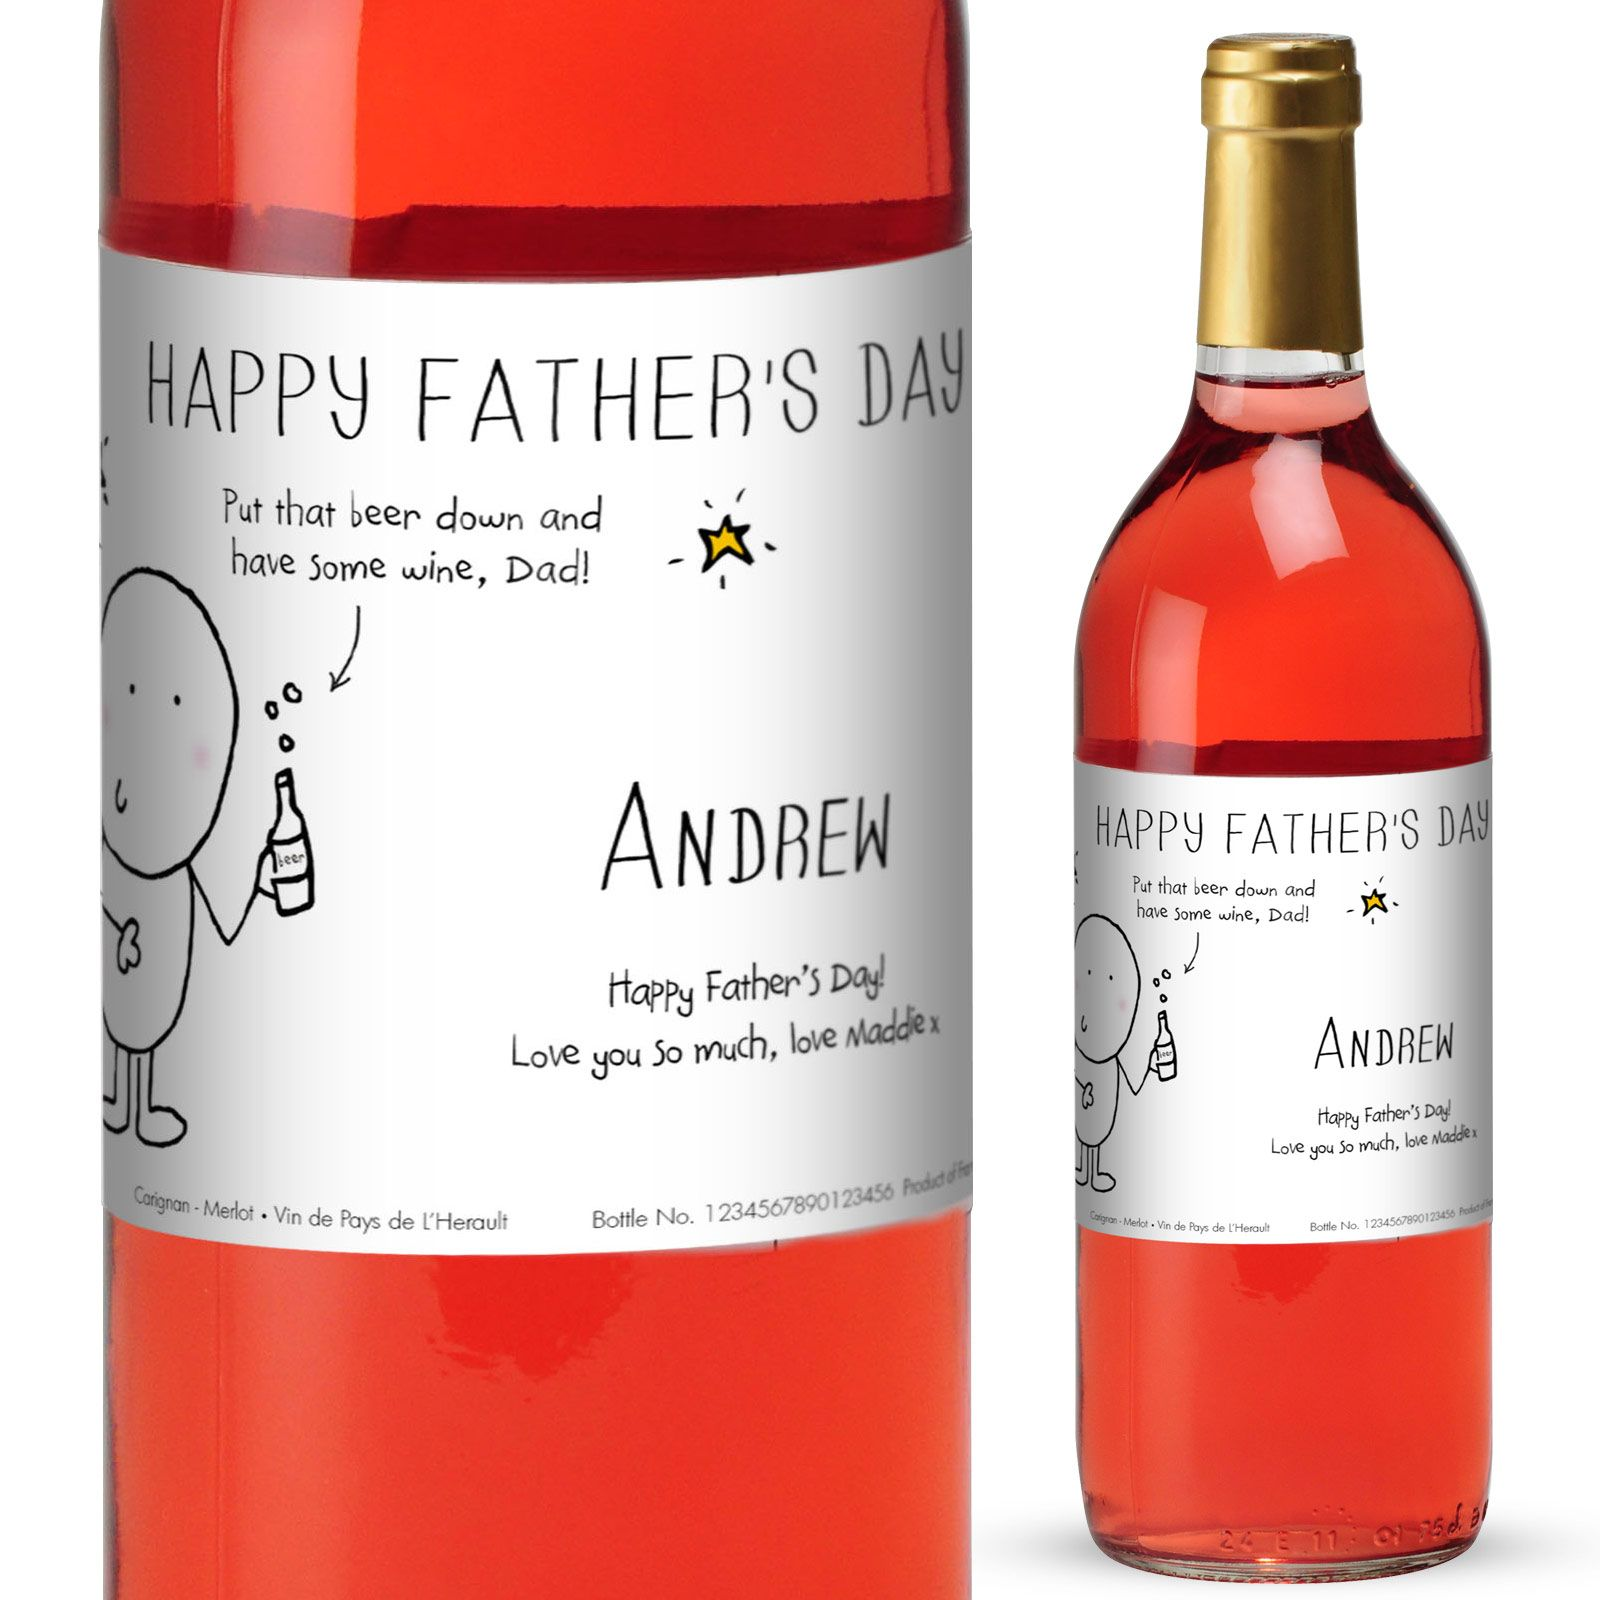 I Just Love It Chilli And Bubbles Fathers Day Rosa C Wine Chilli And Bubbles Fathers Day Rosa C Wine Gift Details Show Dad Y Wine Wedding Bubbles Red Wine Gifts